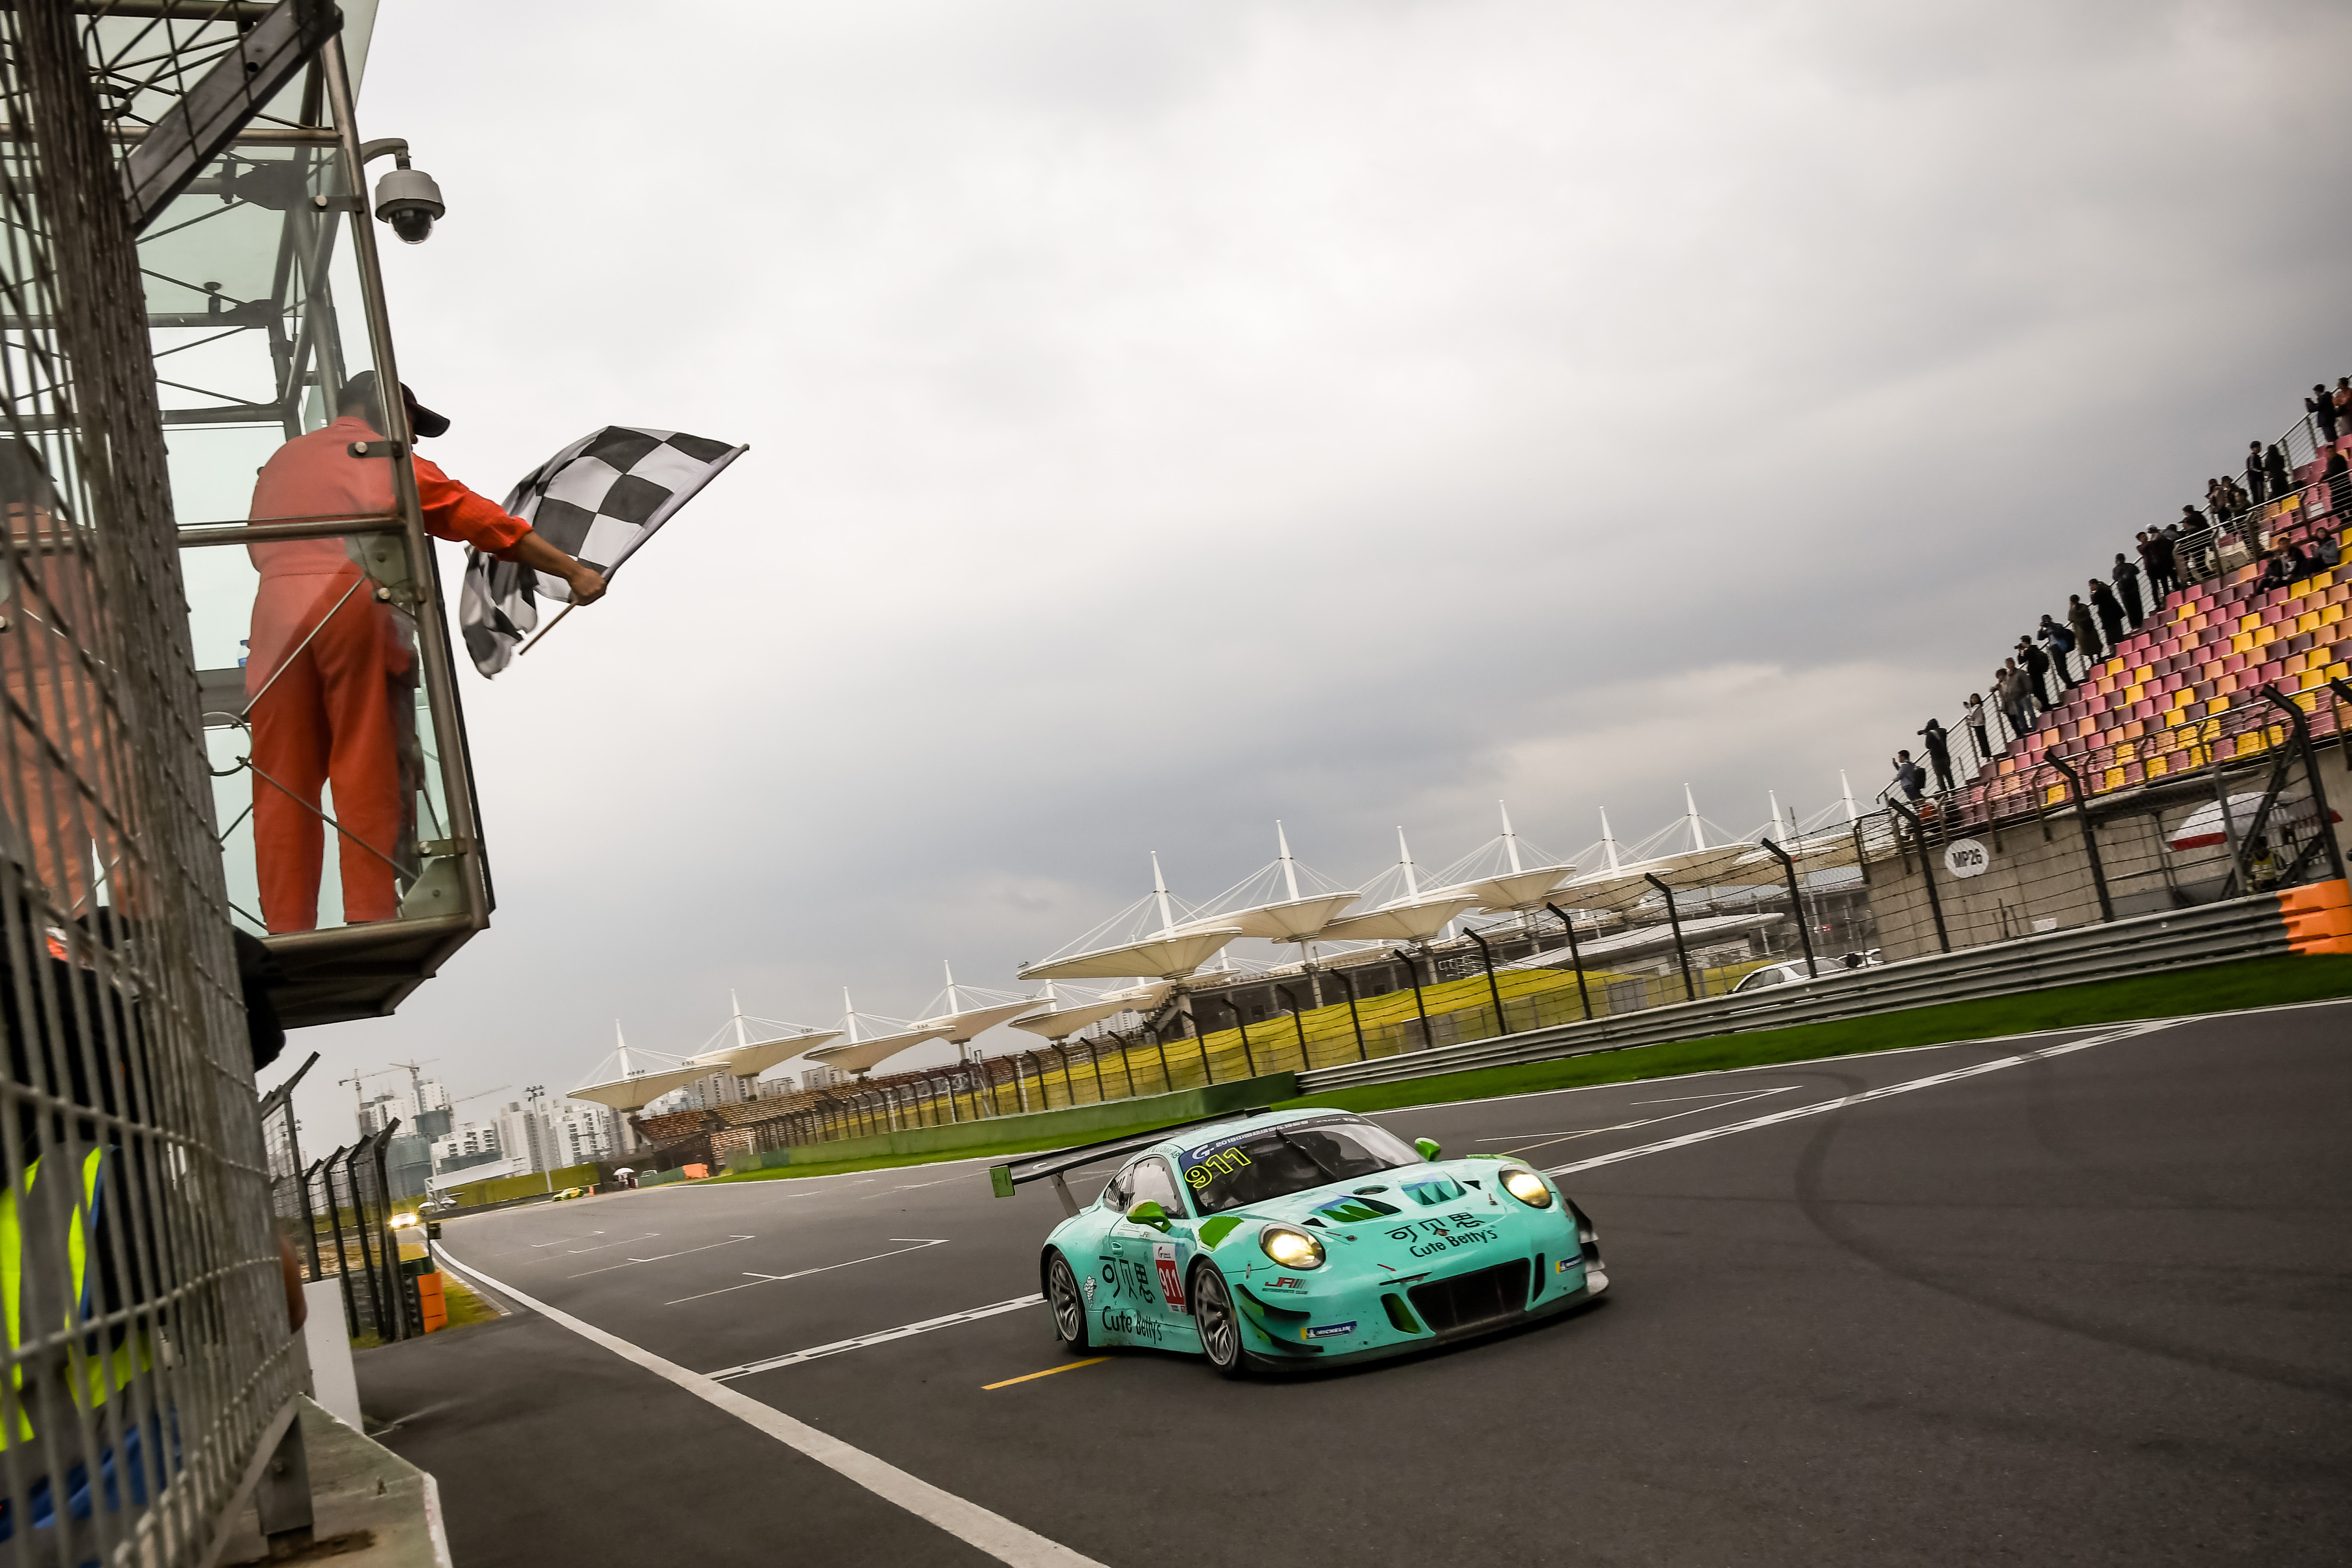 In the final round of the 2018 china gt championship from the shanghai international circuit team jrm and r racing scored three podiums between them